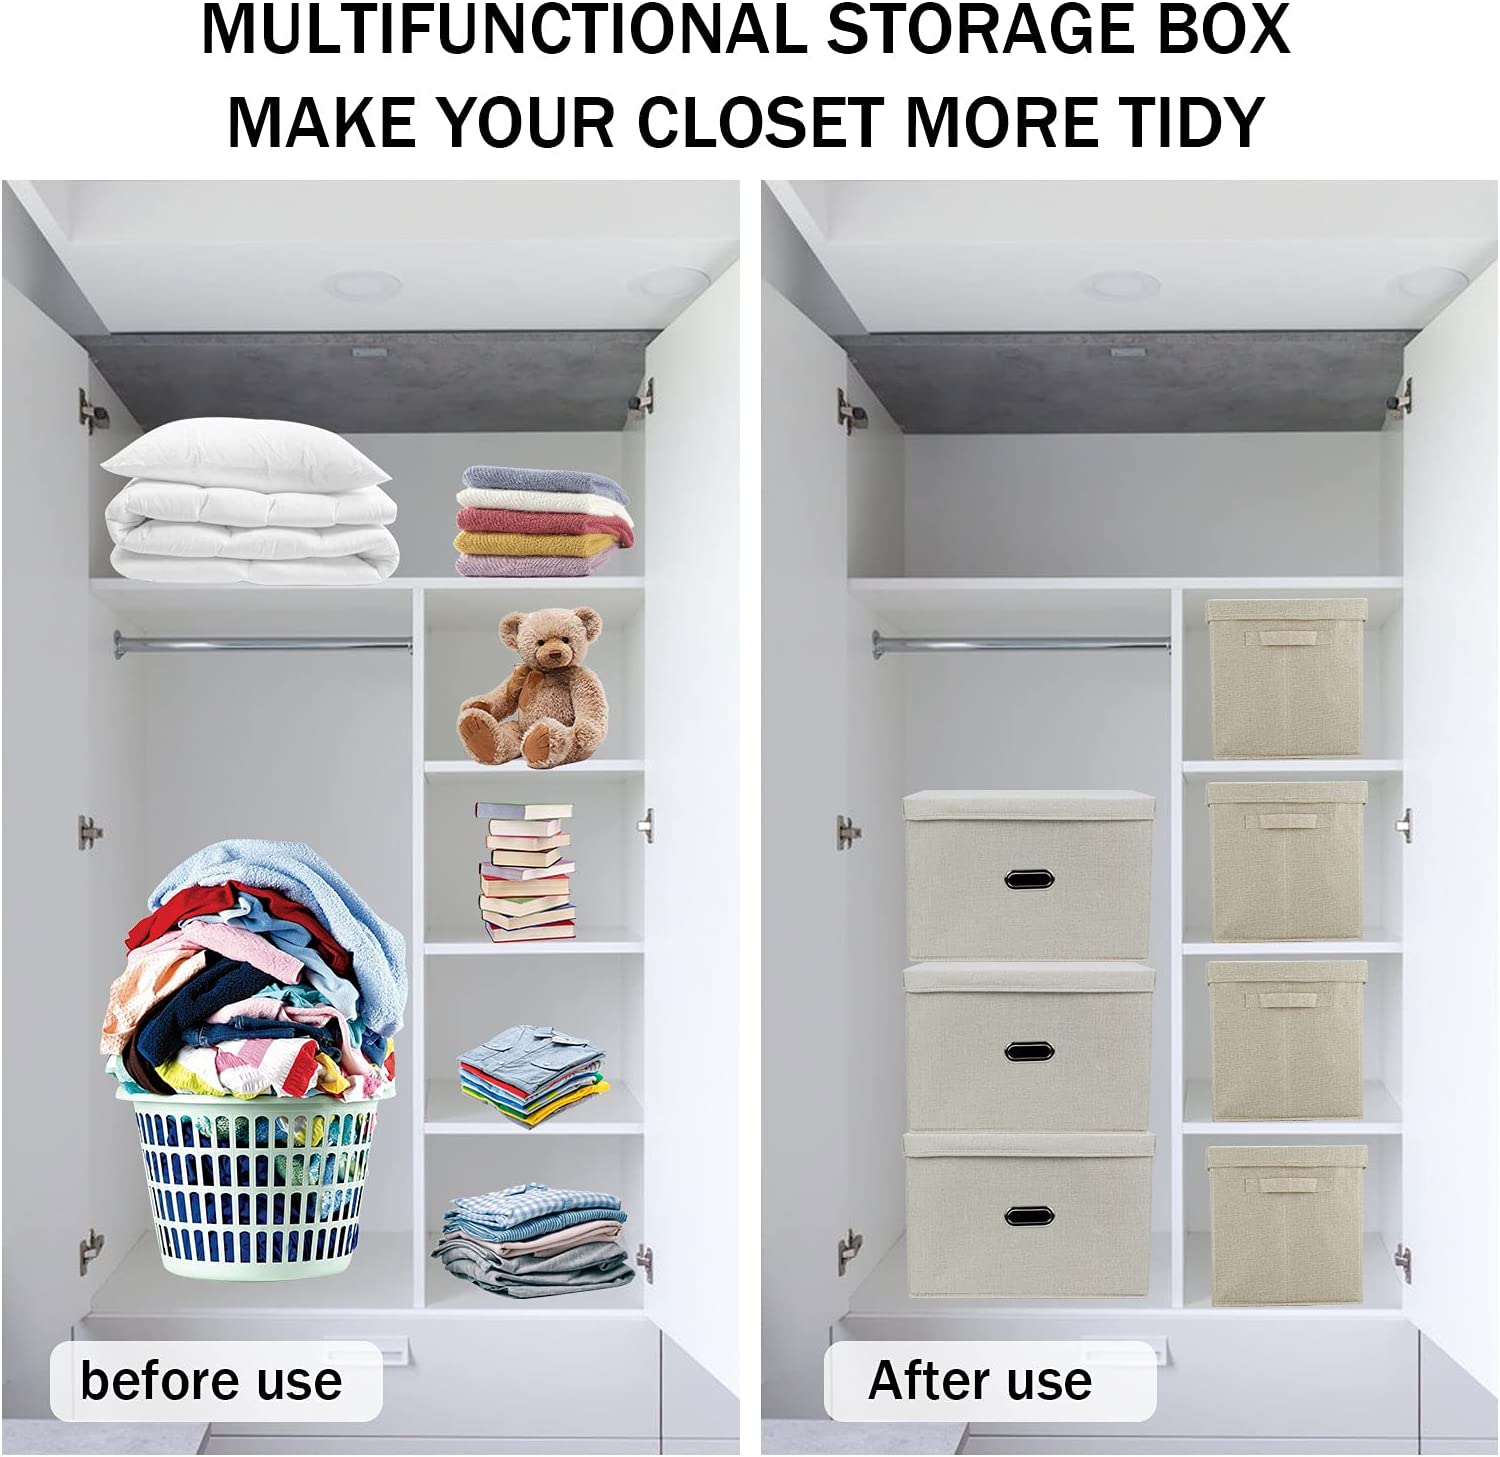 Collapsible Storage Bin Clothes Organizer   Linen Fabric Storage  Containers, Stackable Storage Bins with Lids , Large Capacity Storage Box  for Home ...